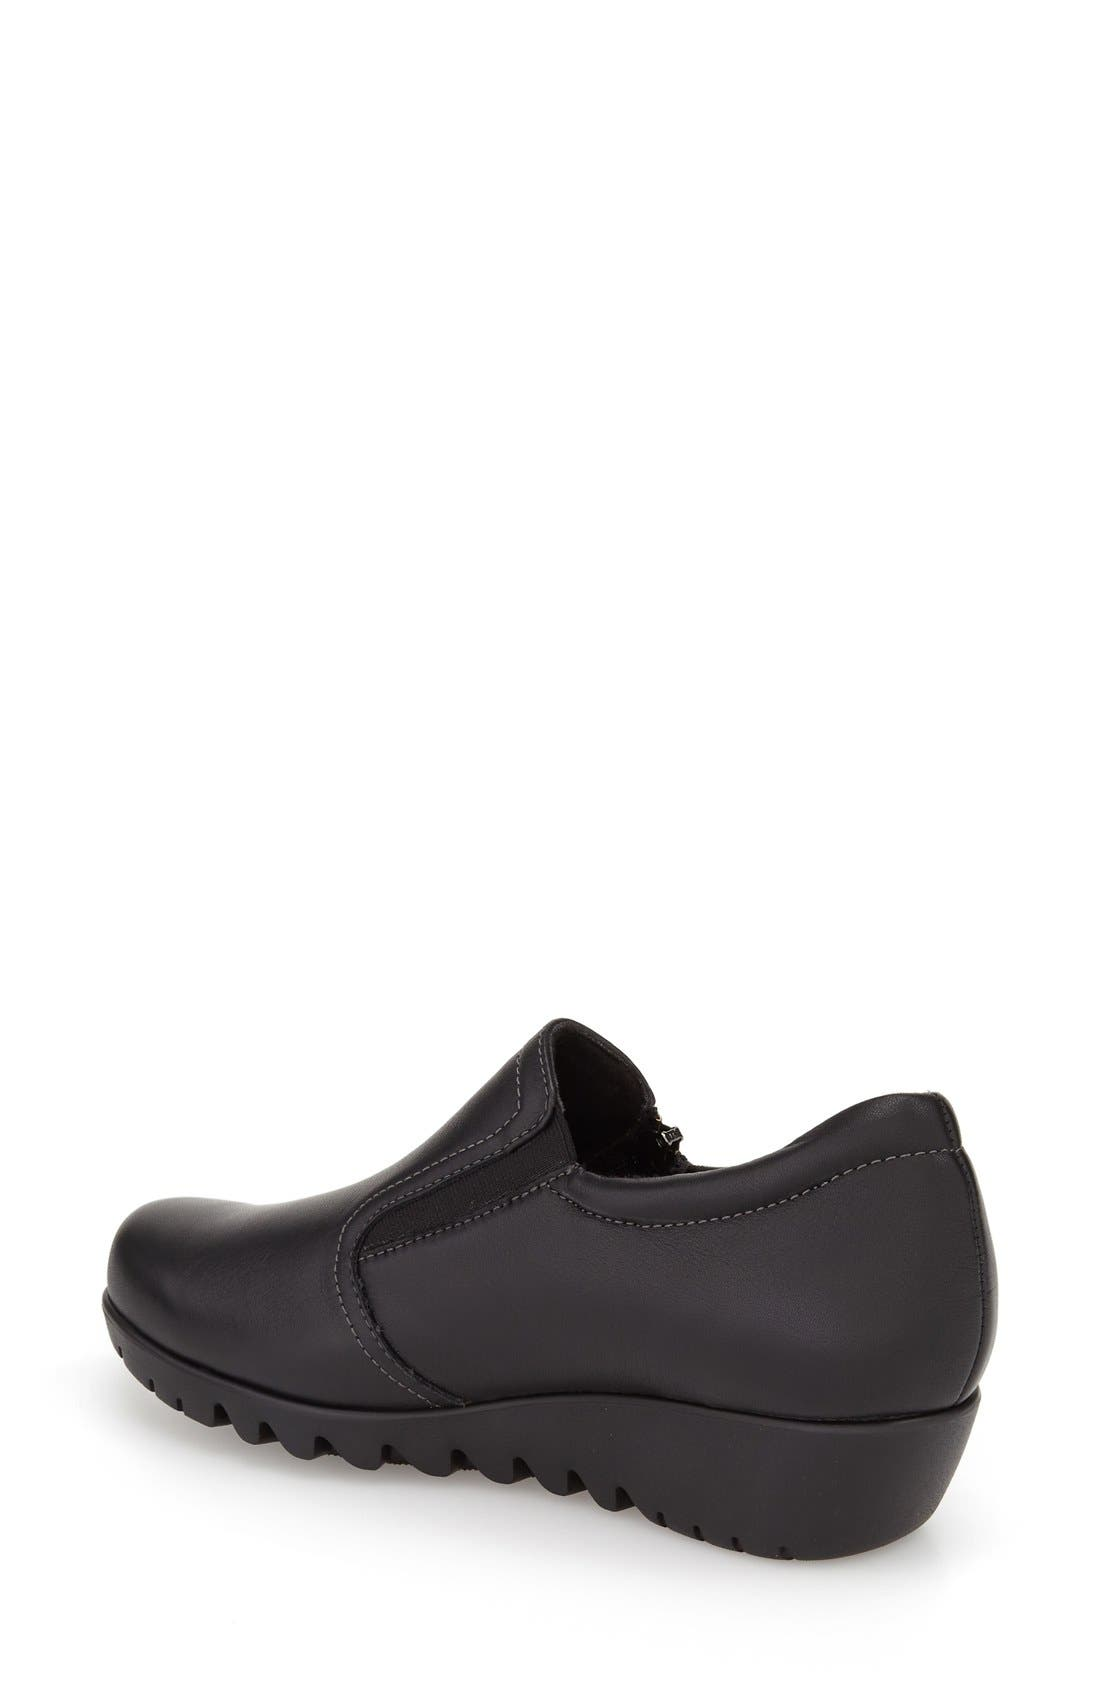 MUNRO, Napoli Zip Bootie, Alternate thumbnail 2, color, BLACK LEATHER